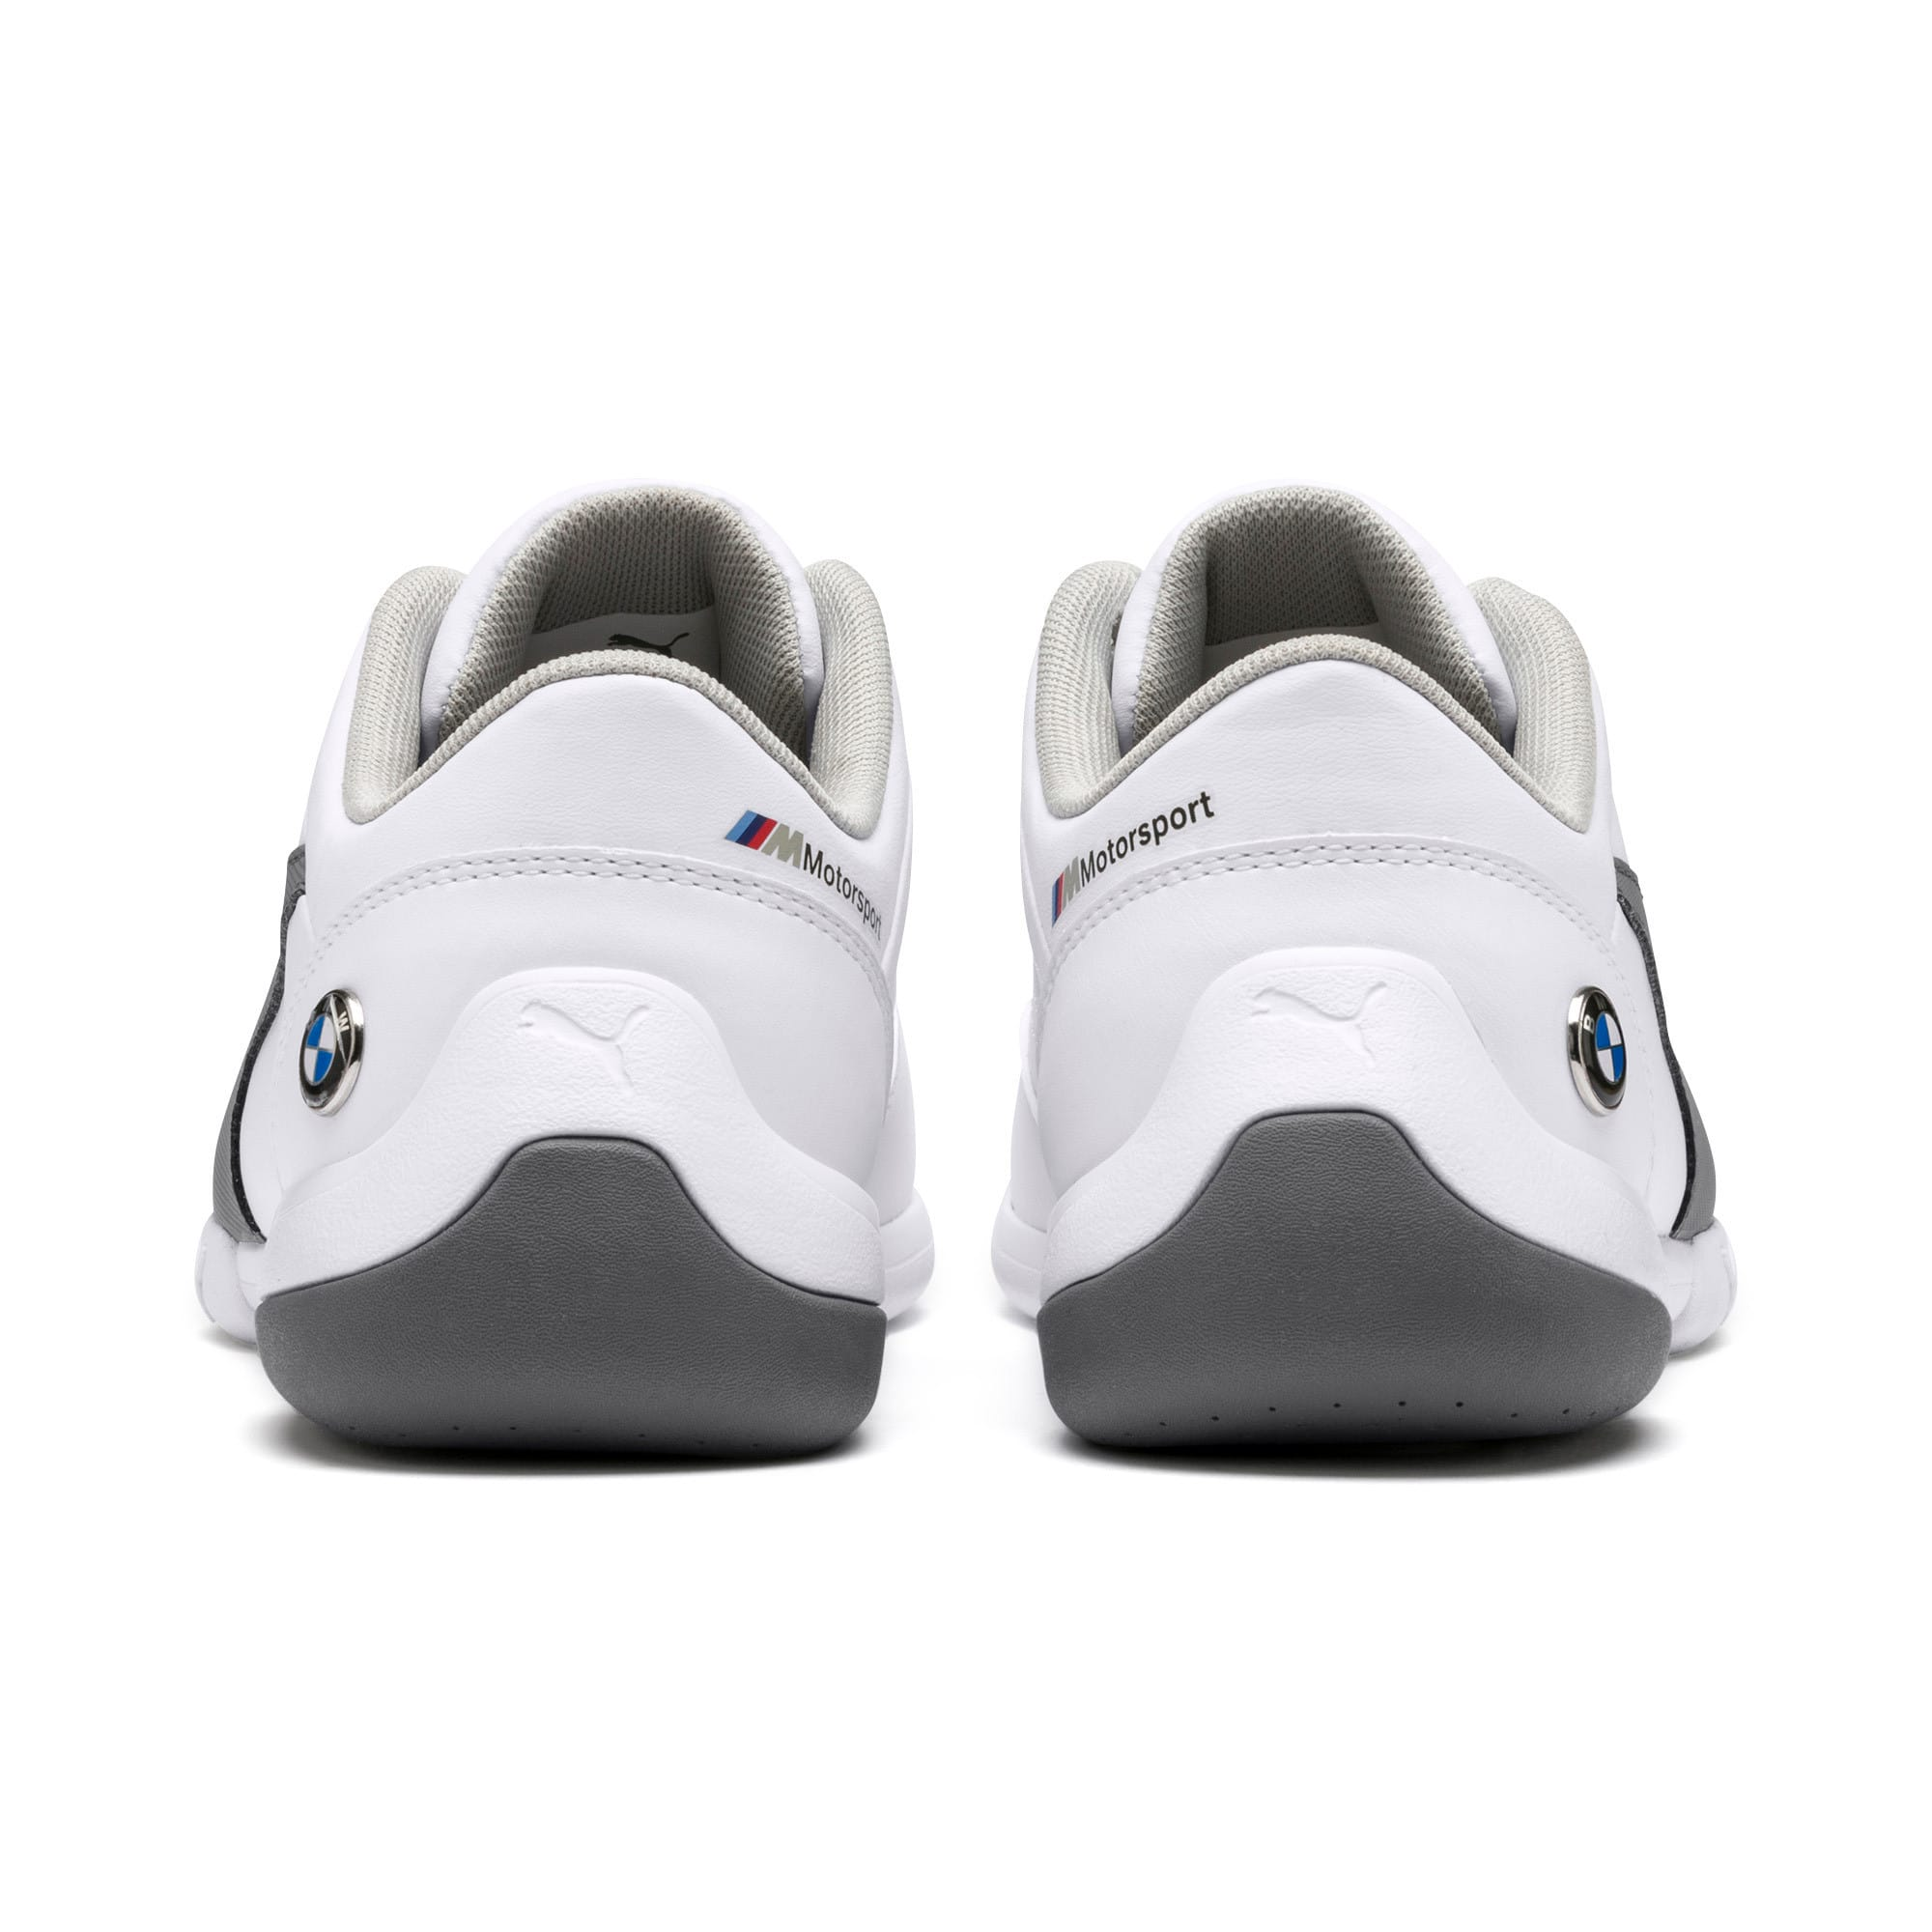 Thumbnail 3 of BMW M Kart Cat III Youth Trainers, Puma White-Smoked Pearl, medium-IND